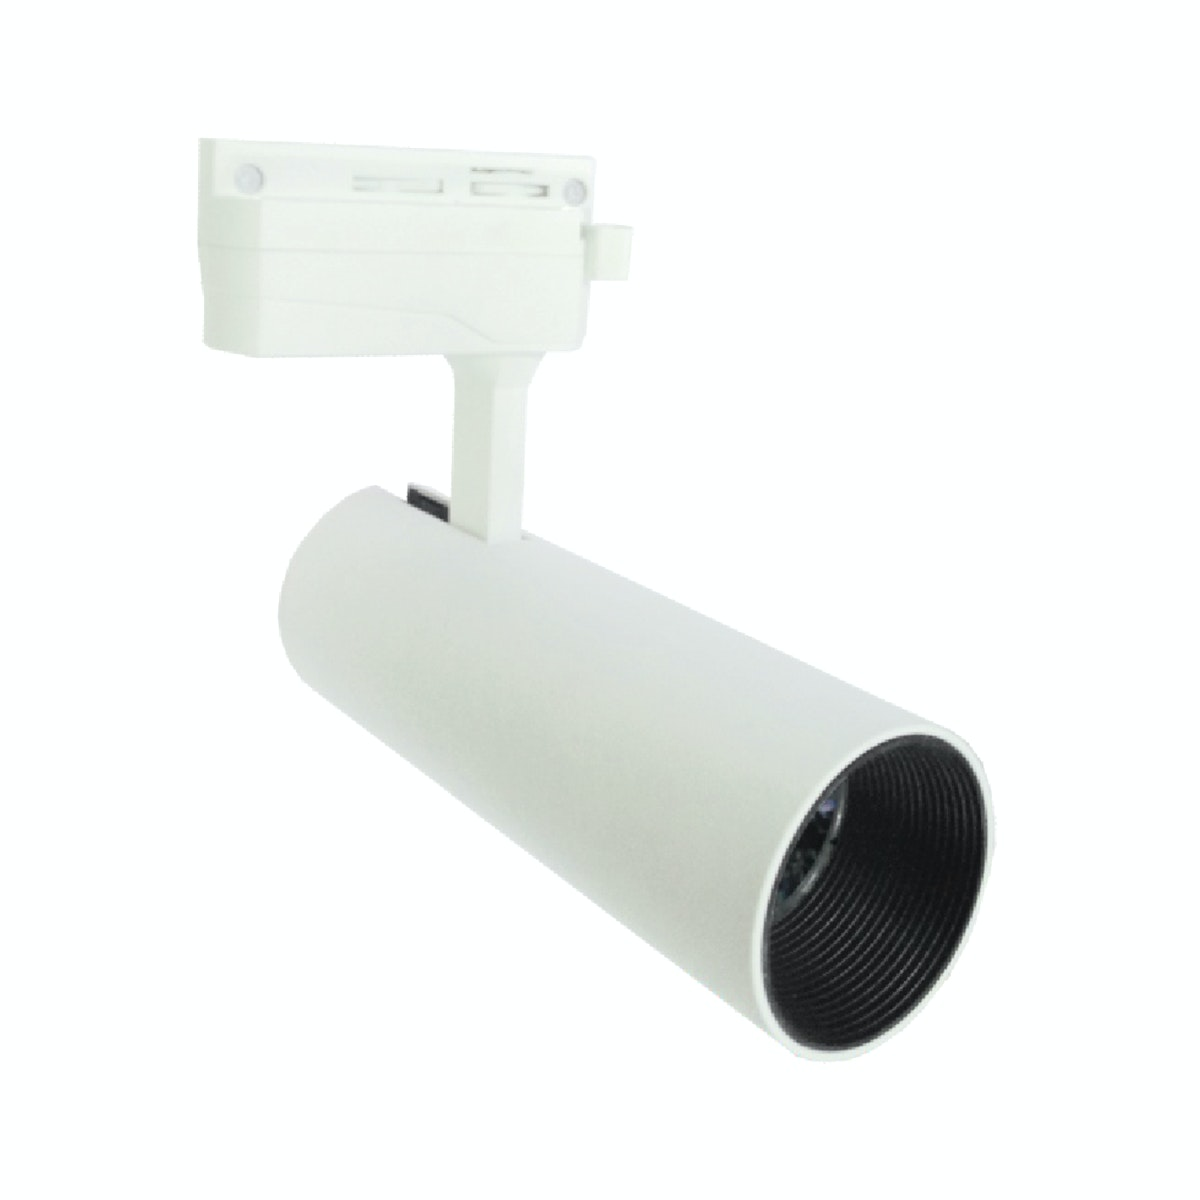 In Lite Track Light INTA273 20W Warm White, Body Color: White